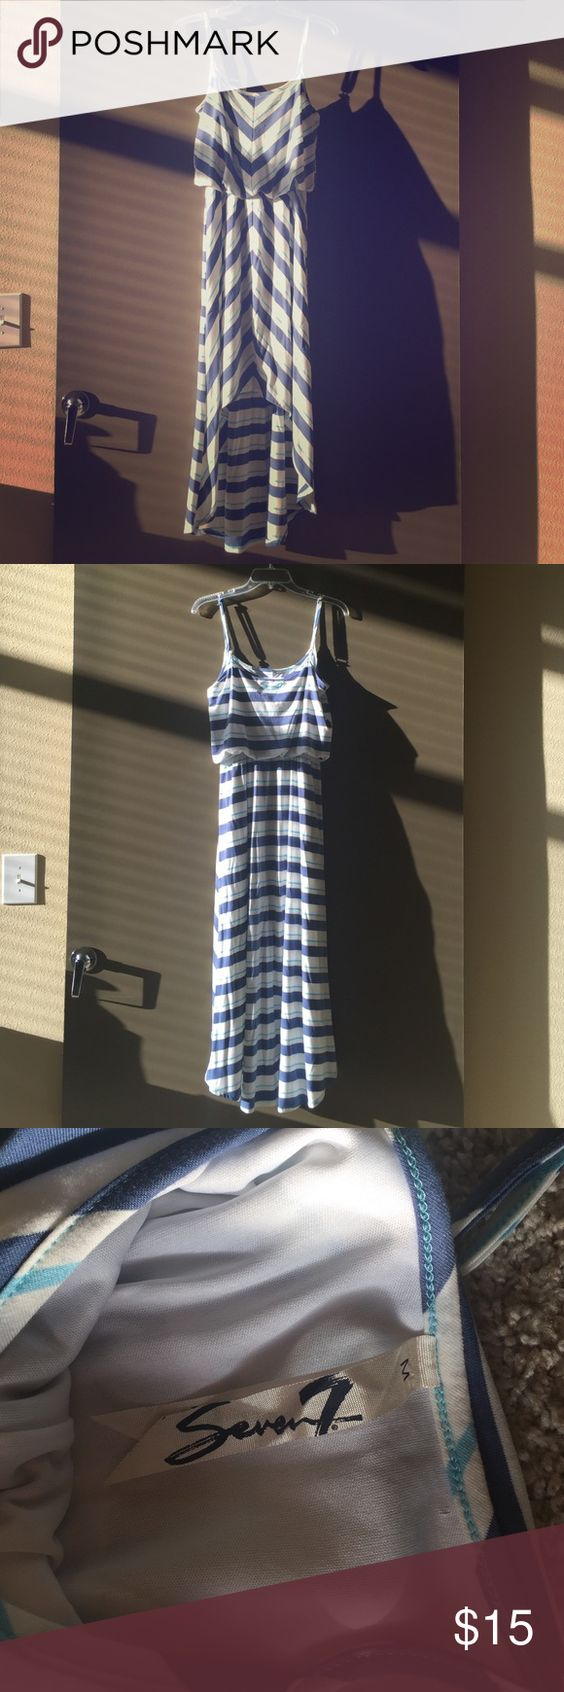 Melissa McCarthy Seven7 High Low Dress Gorgeous blue and white high low dress! Only worn once! Perfect for going to the beach, wearing over a swim suit, a nice brunch, or Sunday's best! Feel free to make an offer! Melissa McCarthy Dresses High Low